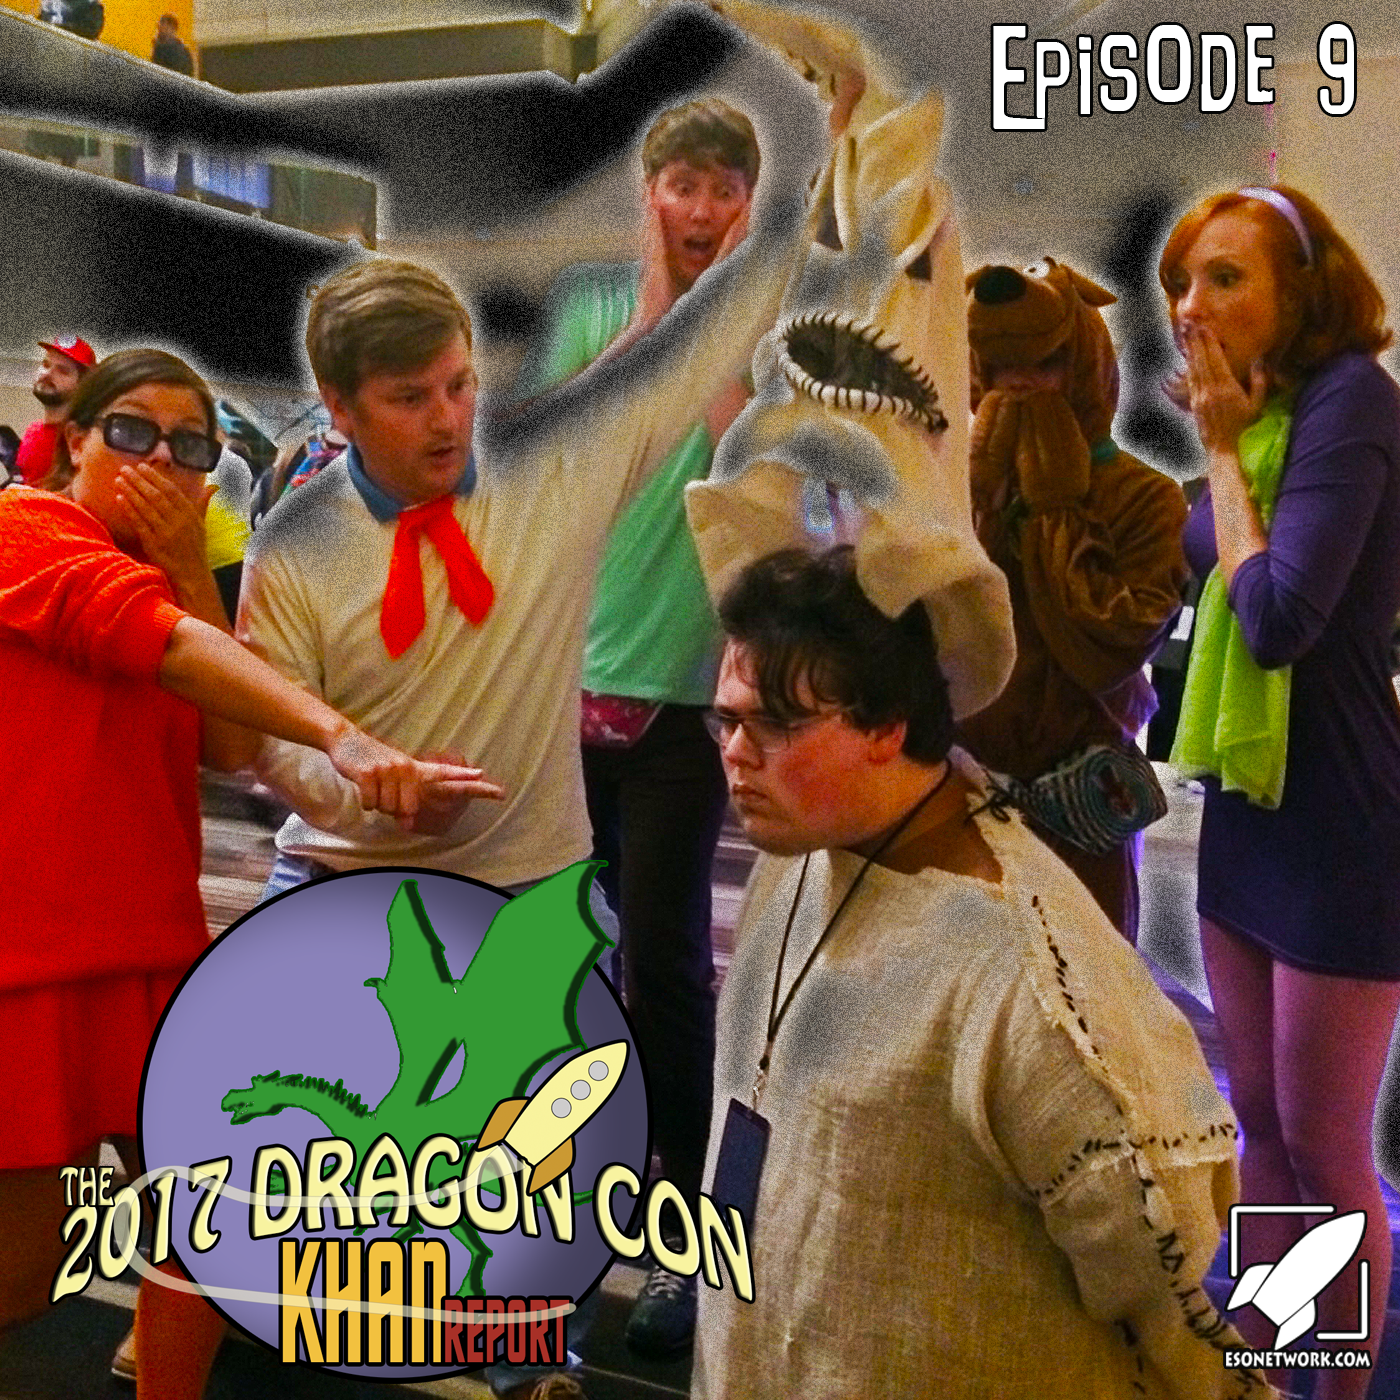 The 2017 Dragon Con Khan Report Ep 9